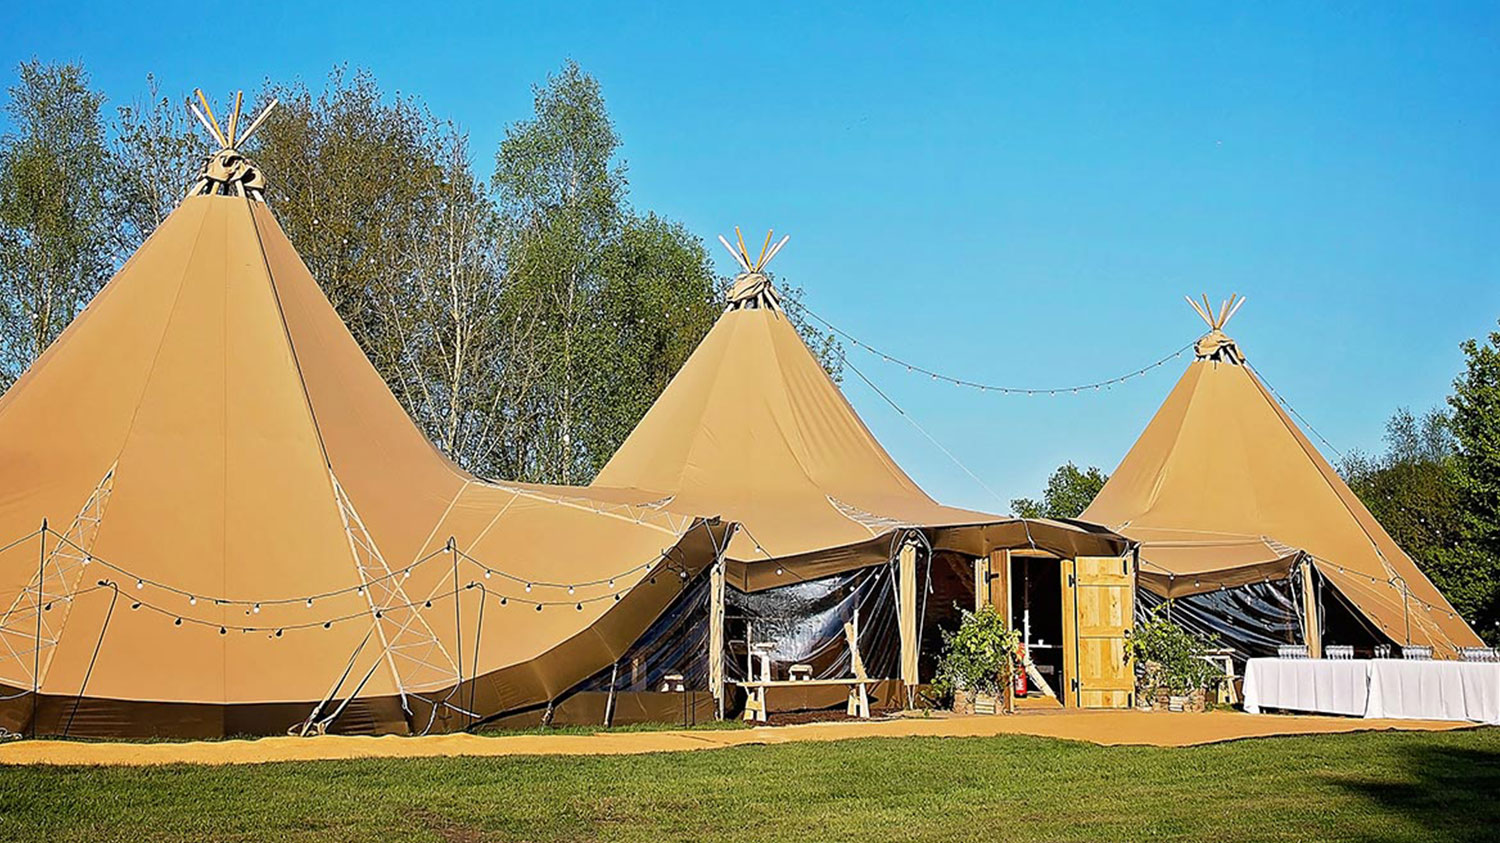 The Woodlands Tipi at Blacknest, Nr Farnham